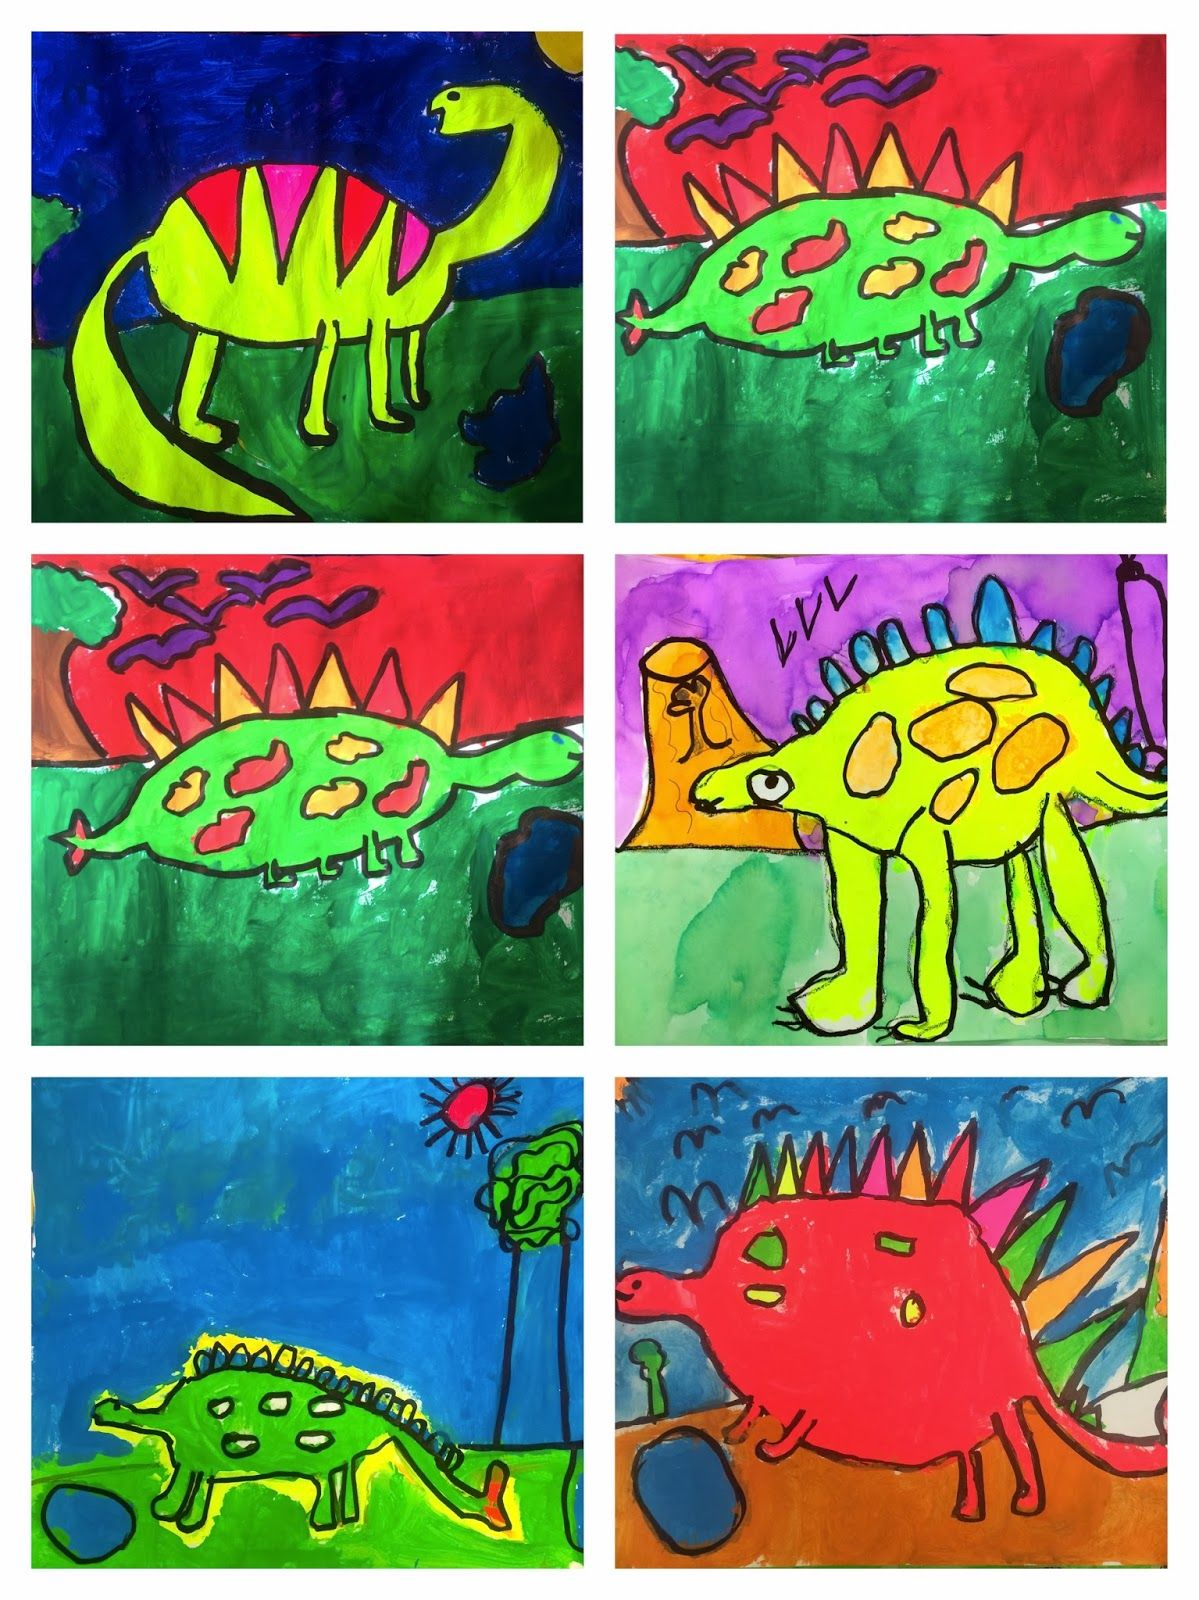 308889ef174fae5a6fc0f39d2fa33901 Kindergarten And First Grade Art Projects on using shapes, end school, for kindergarten, fall scarecrow, one day, cutest beginning year, eric carle,